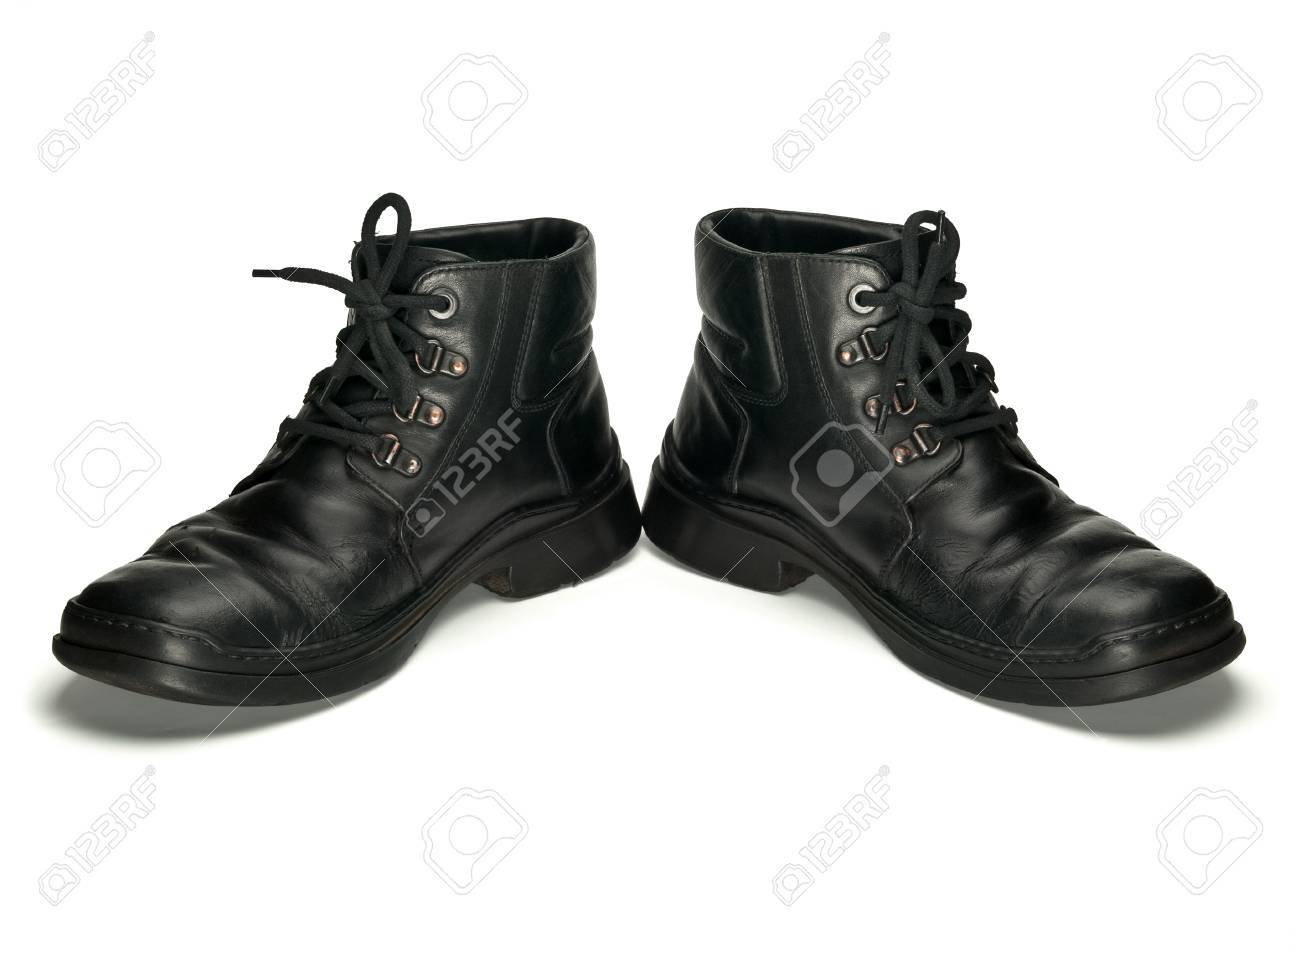 Old Leather Boots Of Black Colour Are